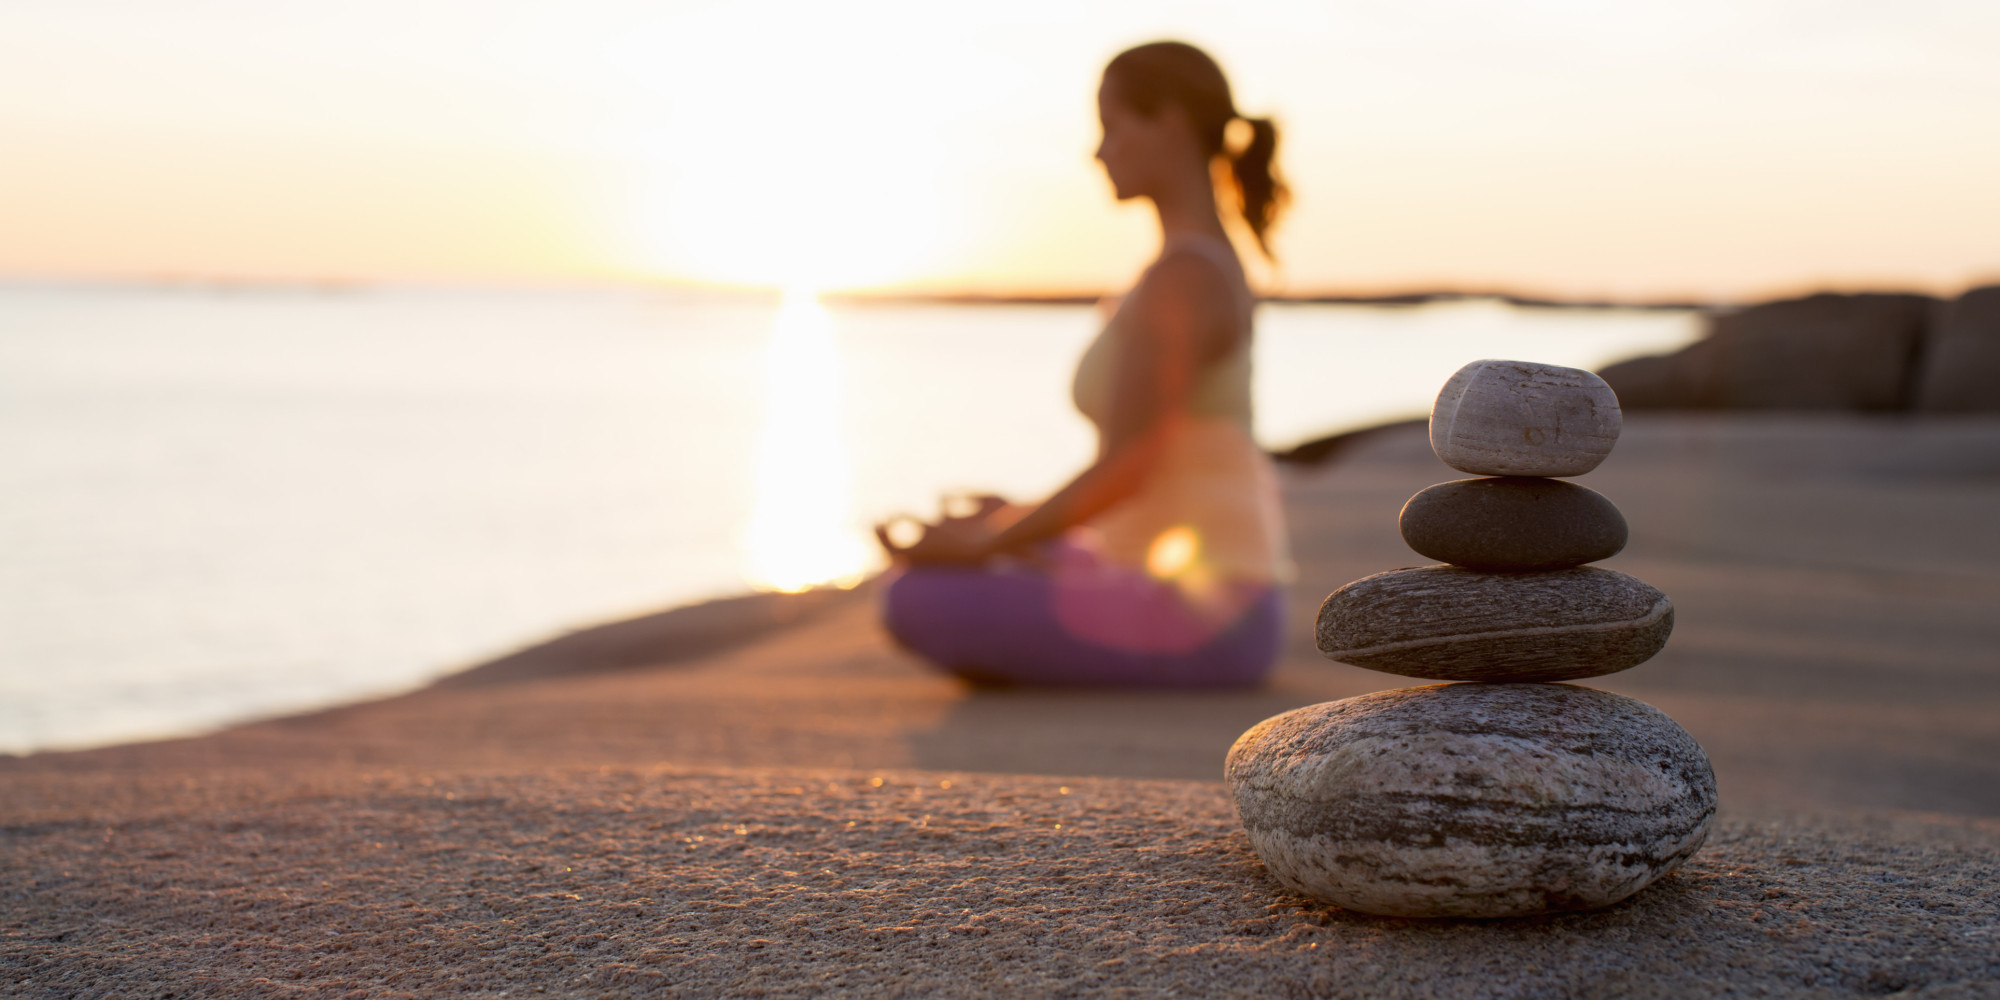 8 Amazing Meditation Tips for Beginners on How to Meditate!